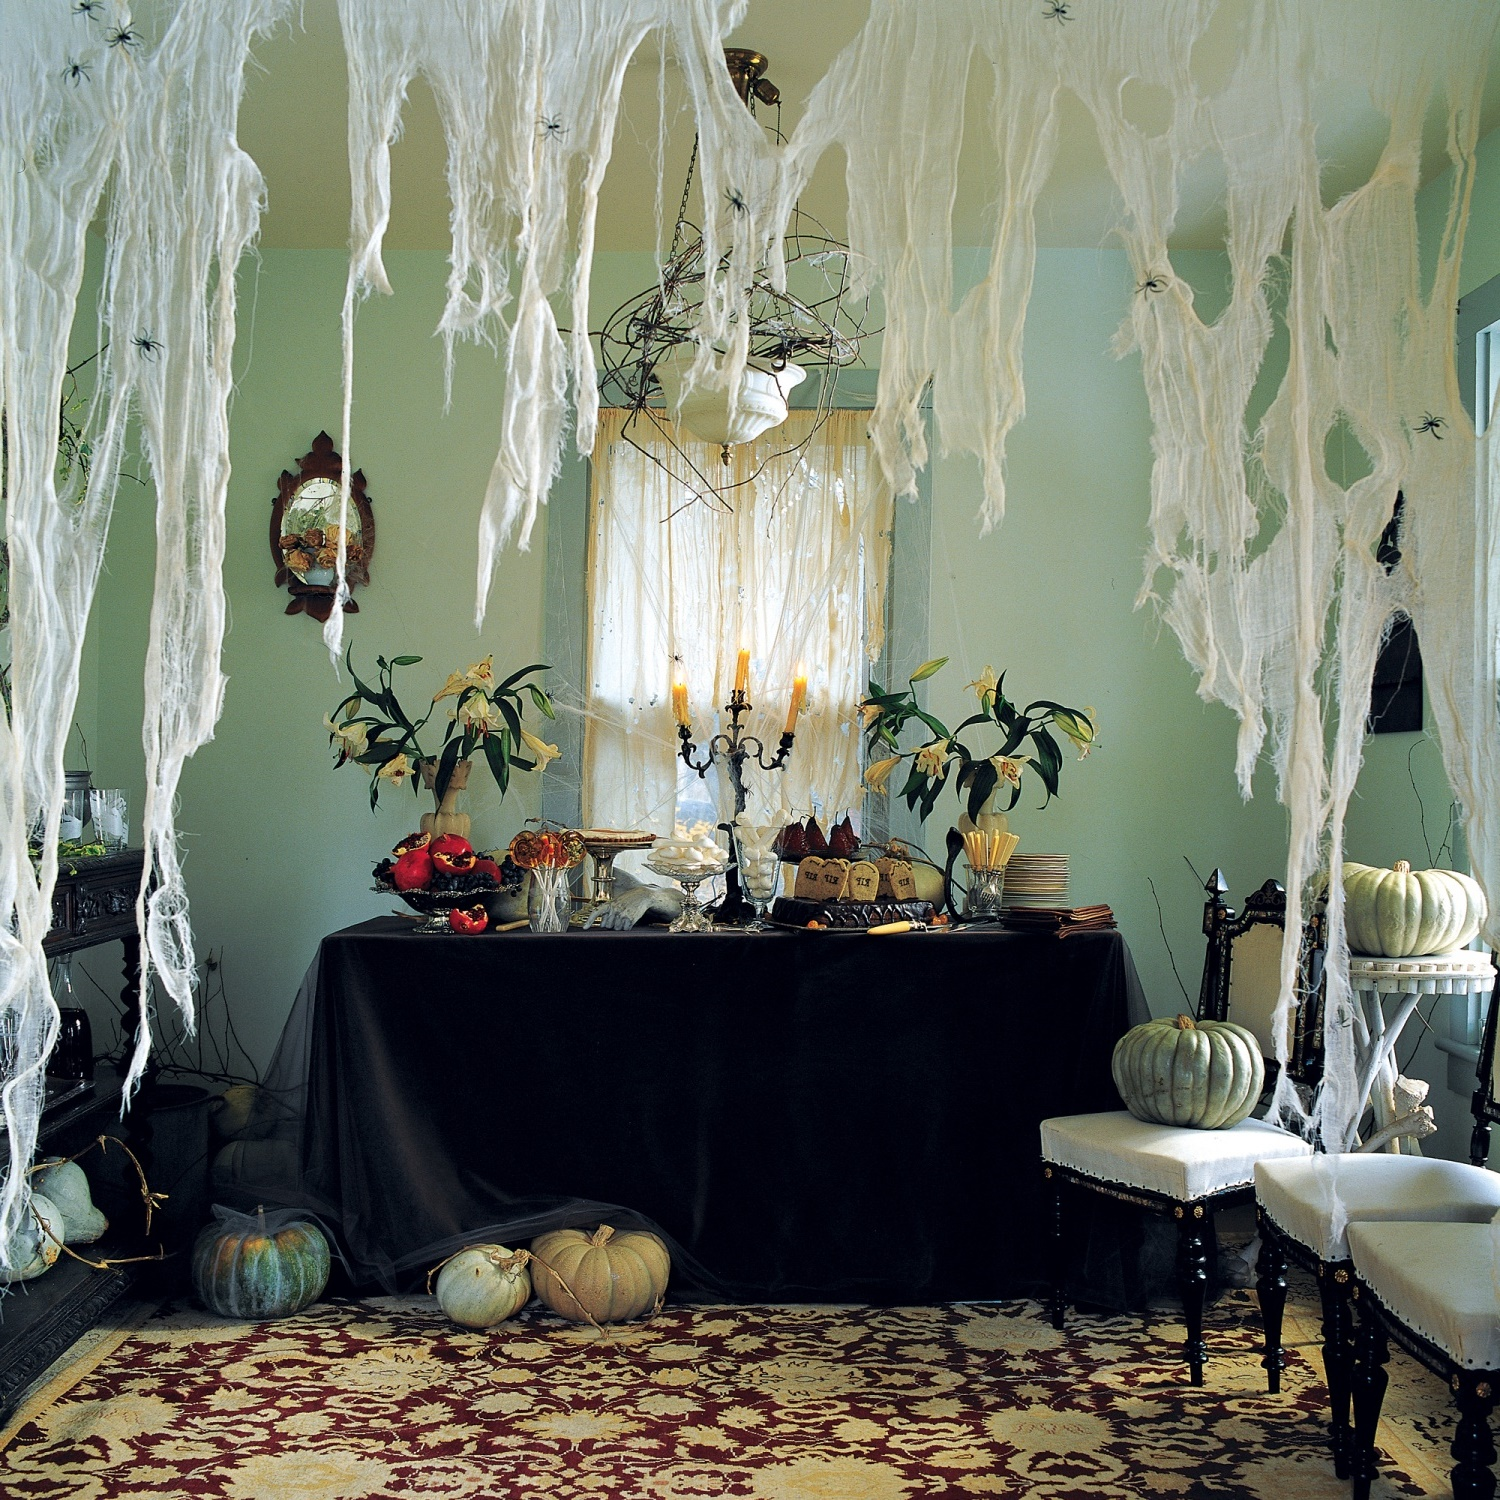 11 Awesome Halloween Indoor Decorations - Best Halloween Party Decorations